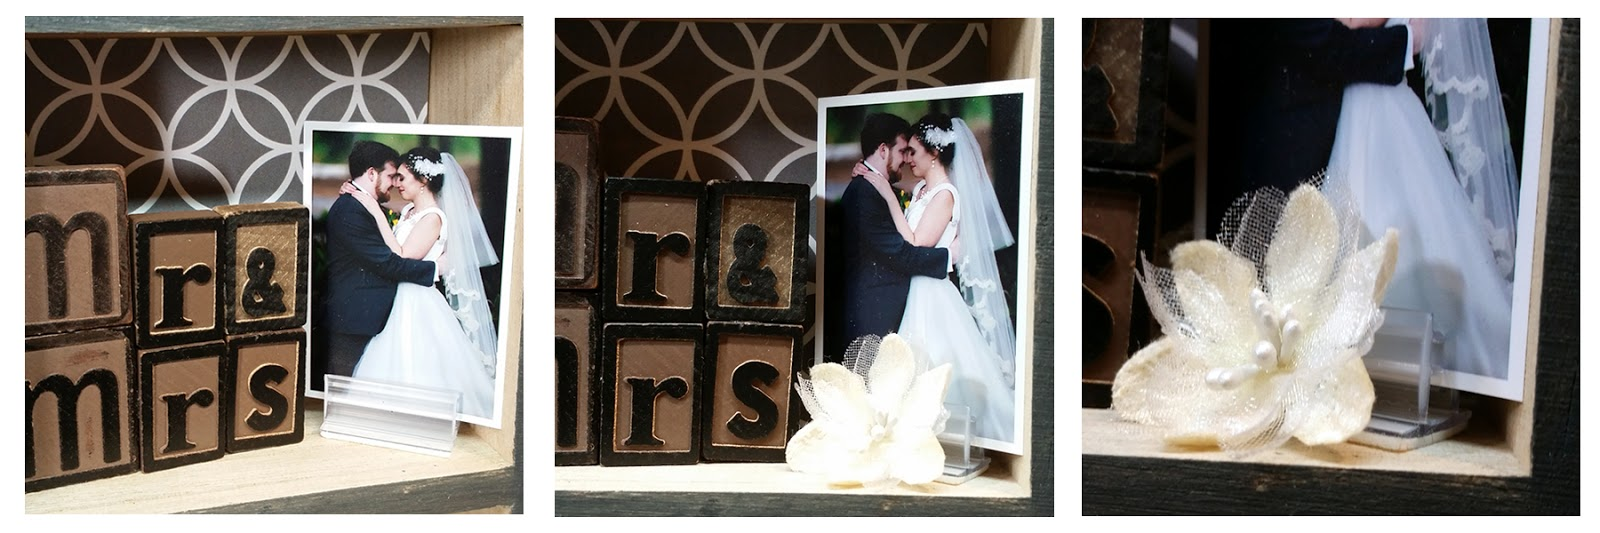 My Time To Play: Wedding Shadow Box Display - 2017 Best Blogger ...